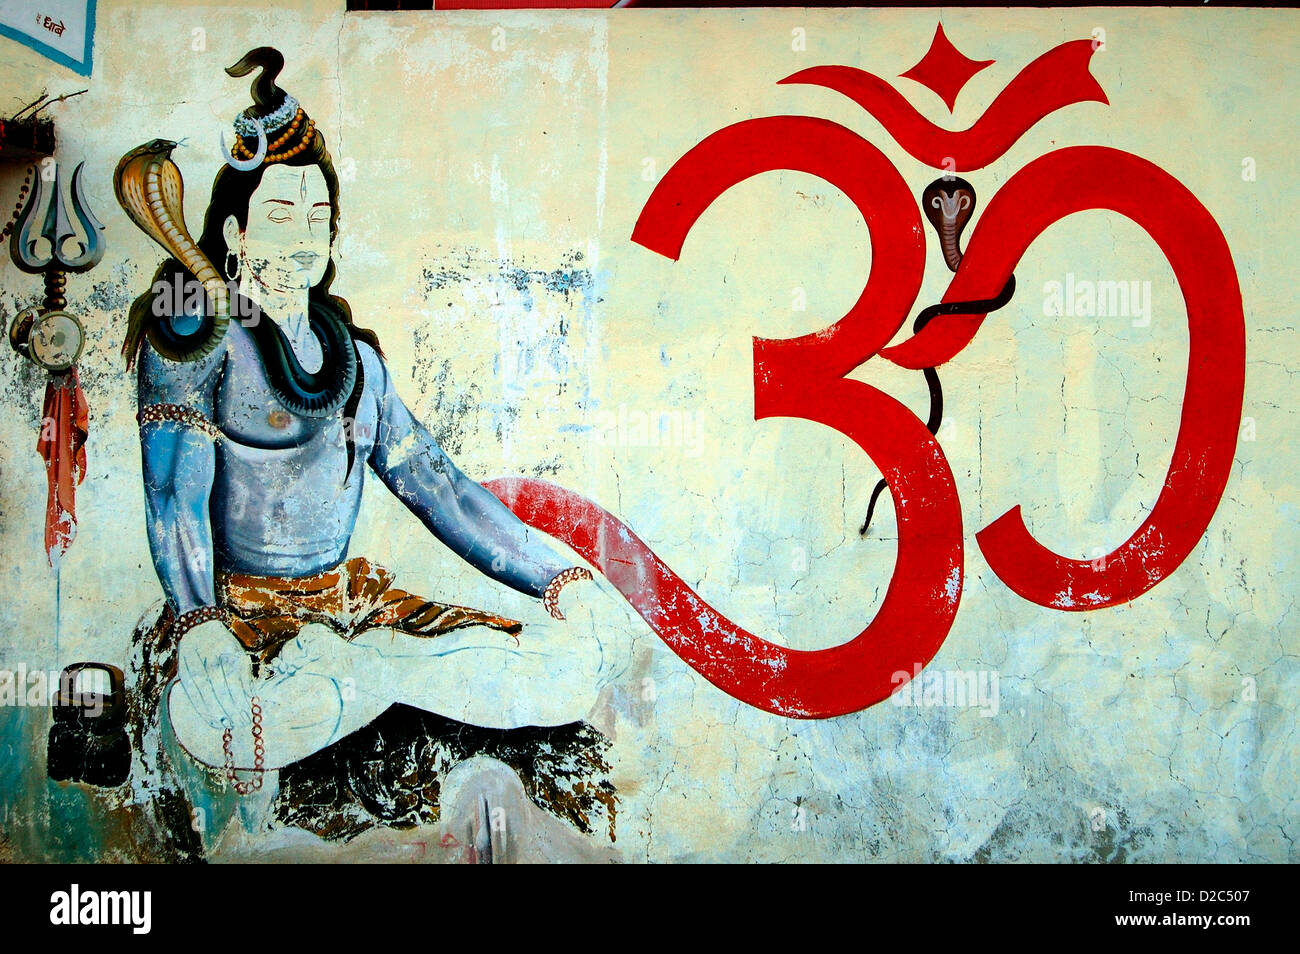 Wall Painting Of Lord Shiva And Om In India - Stock Image